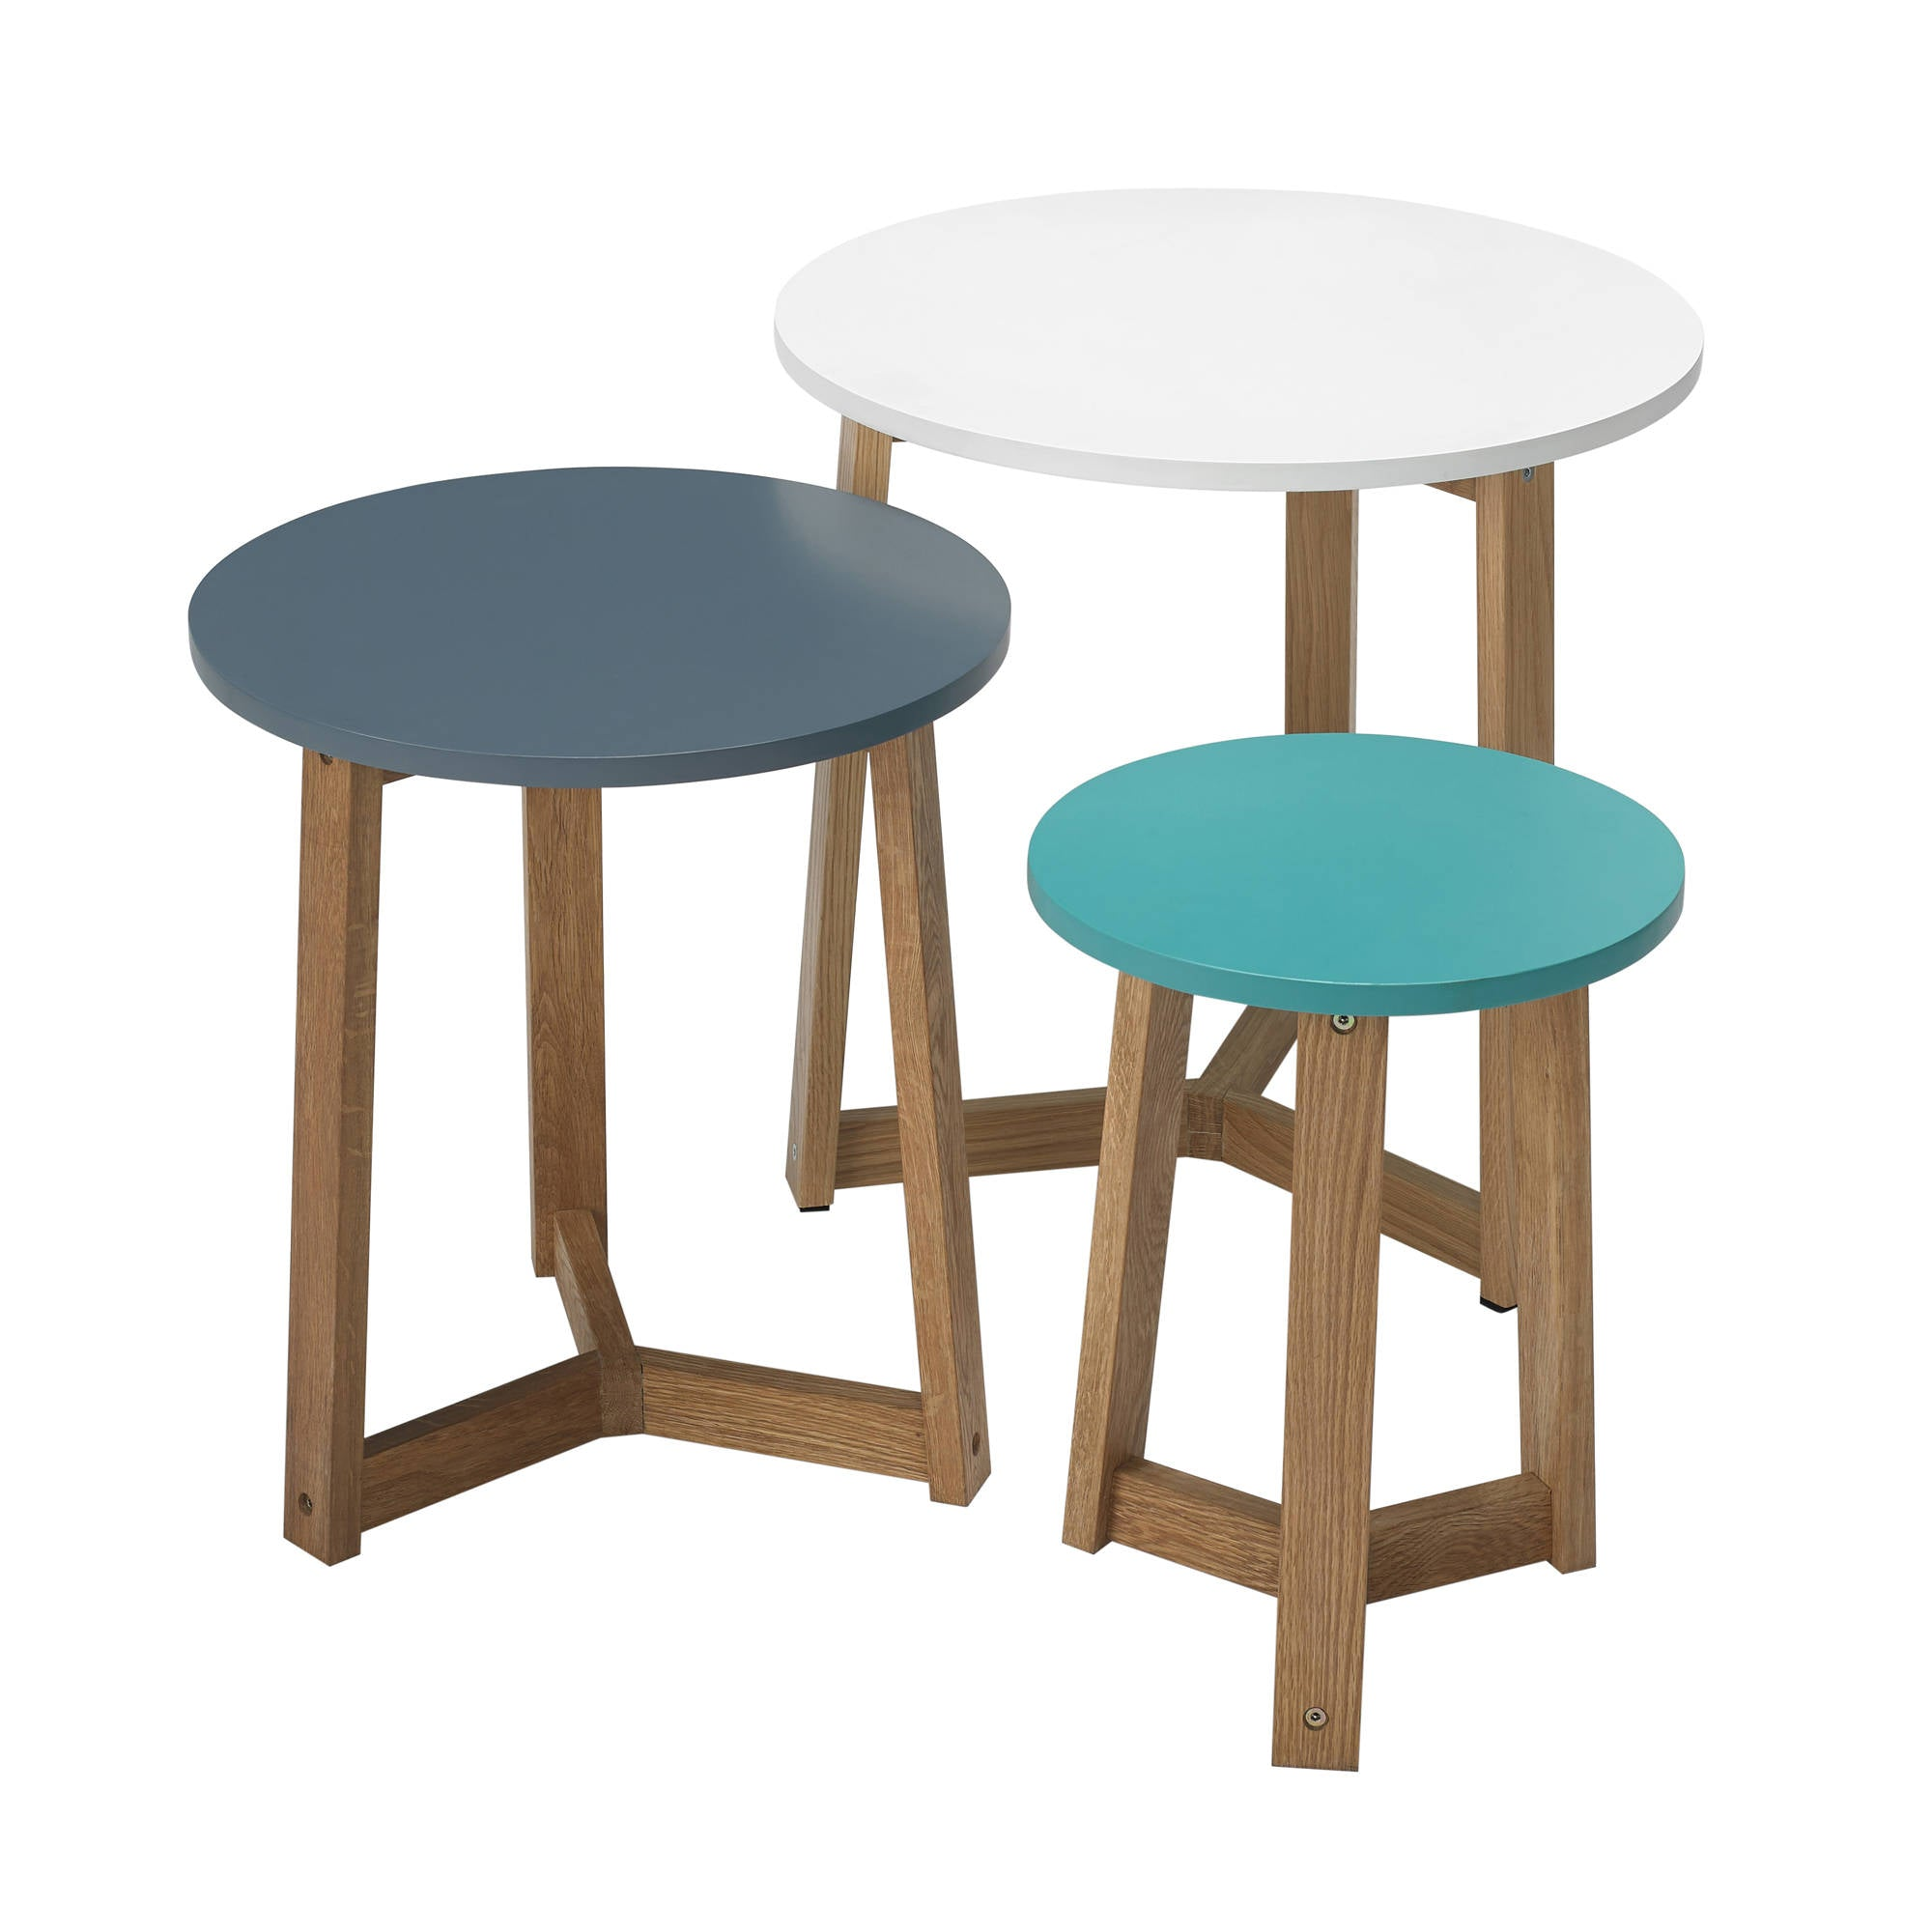 Withdean Nest of Tables - Ezzo